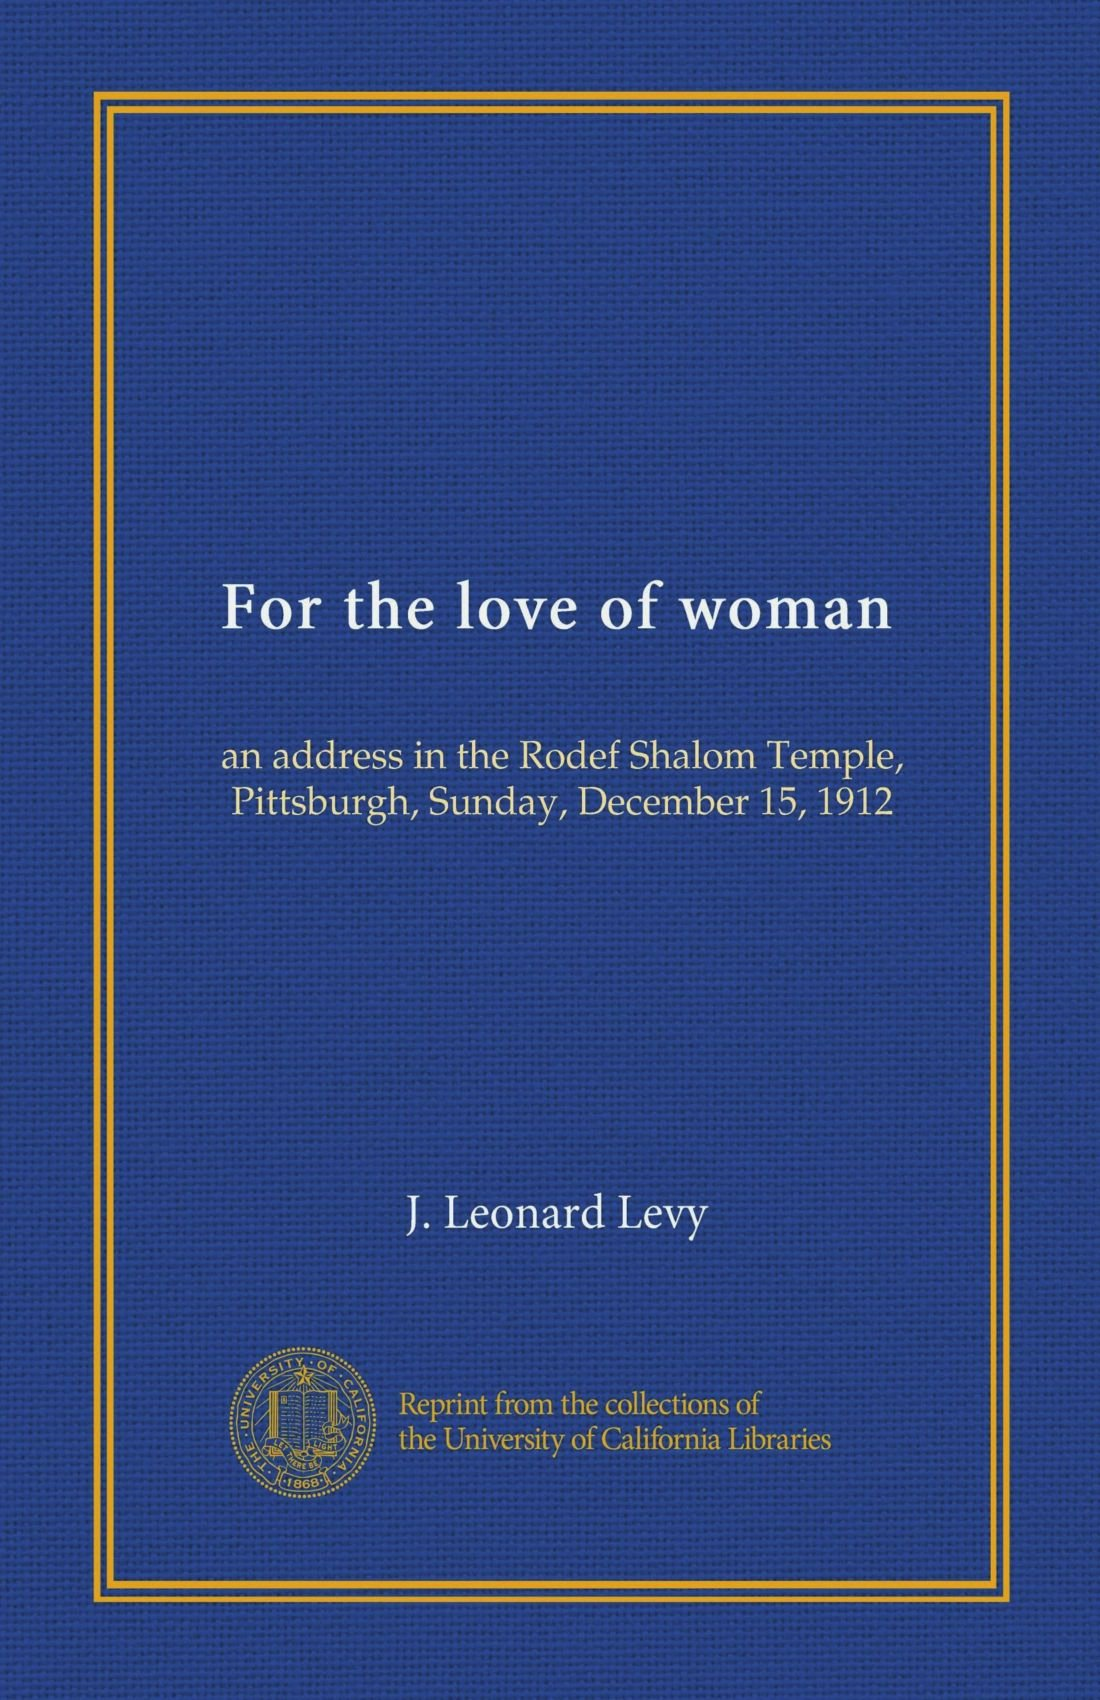 Download For the love of woman: an address in the Rodef Shalom Temple, Pittsburgh, Sunday, December 15, 1912 ebook